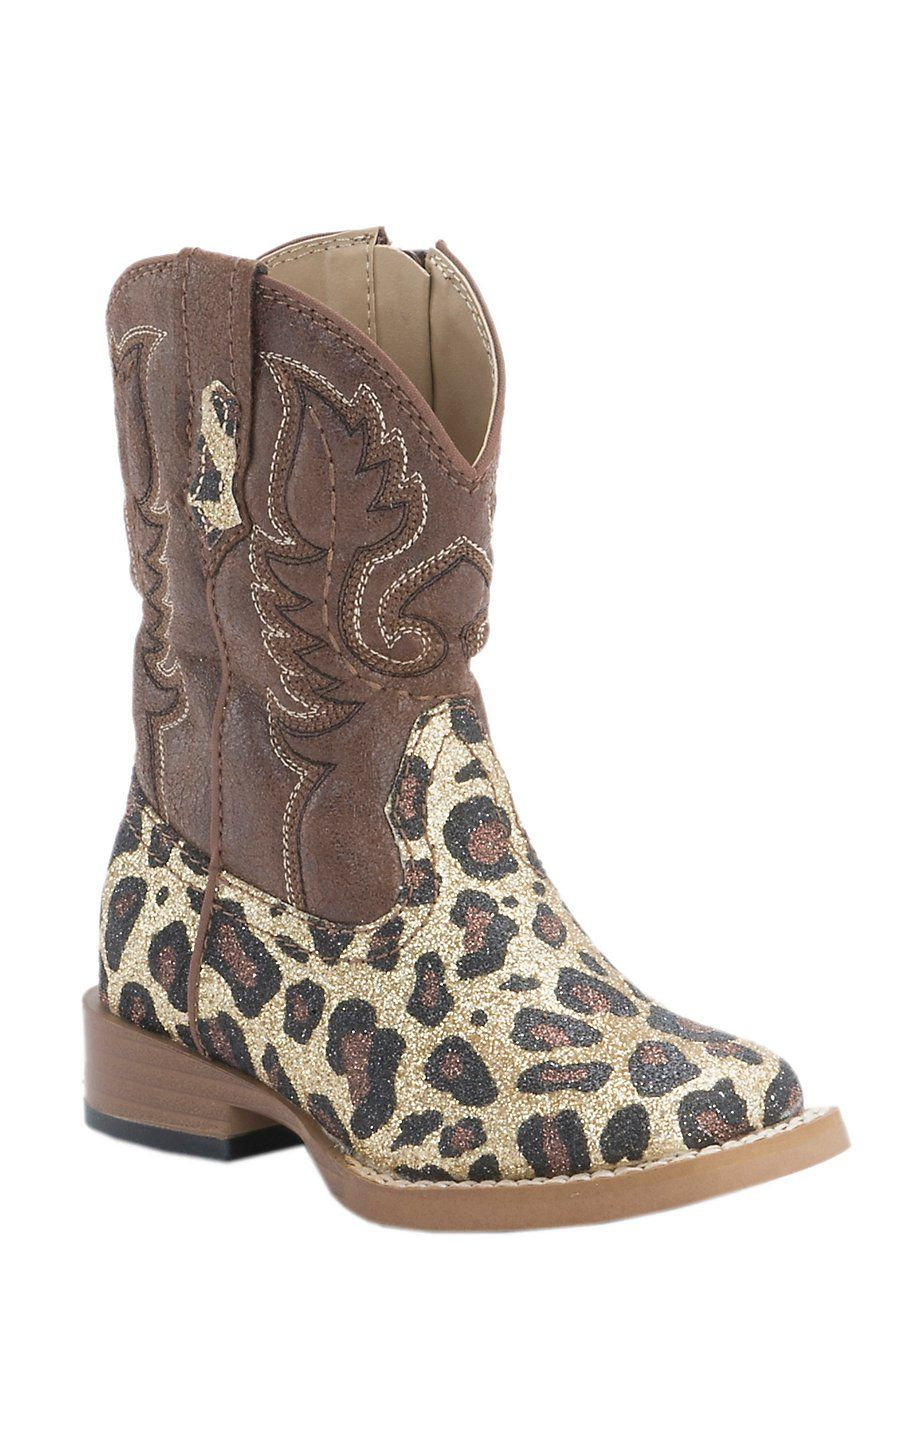 8afeaa2bc899 Roper Infant Brown Cheetah Glitter Square Toe Western Boots ...